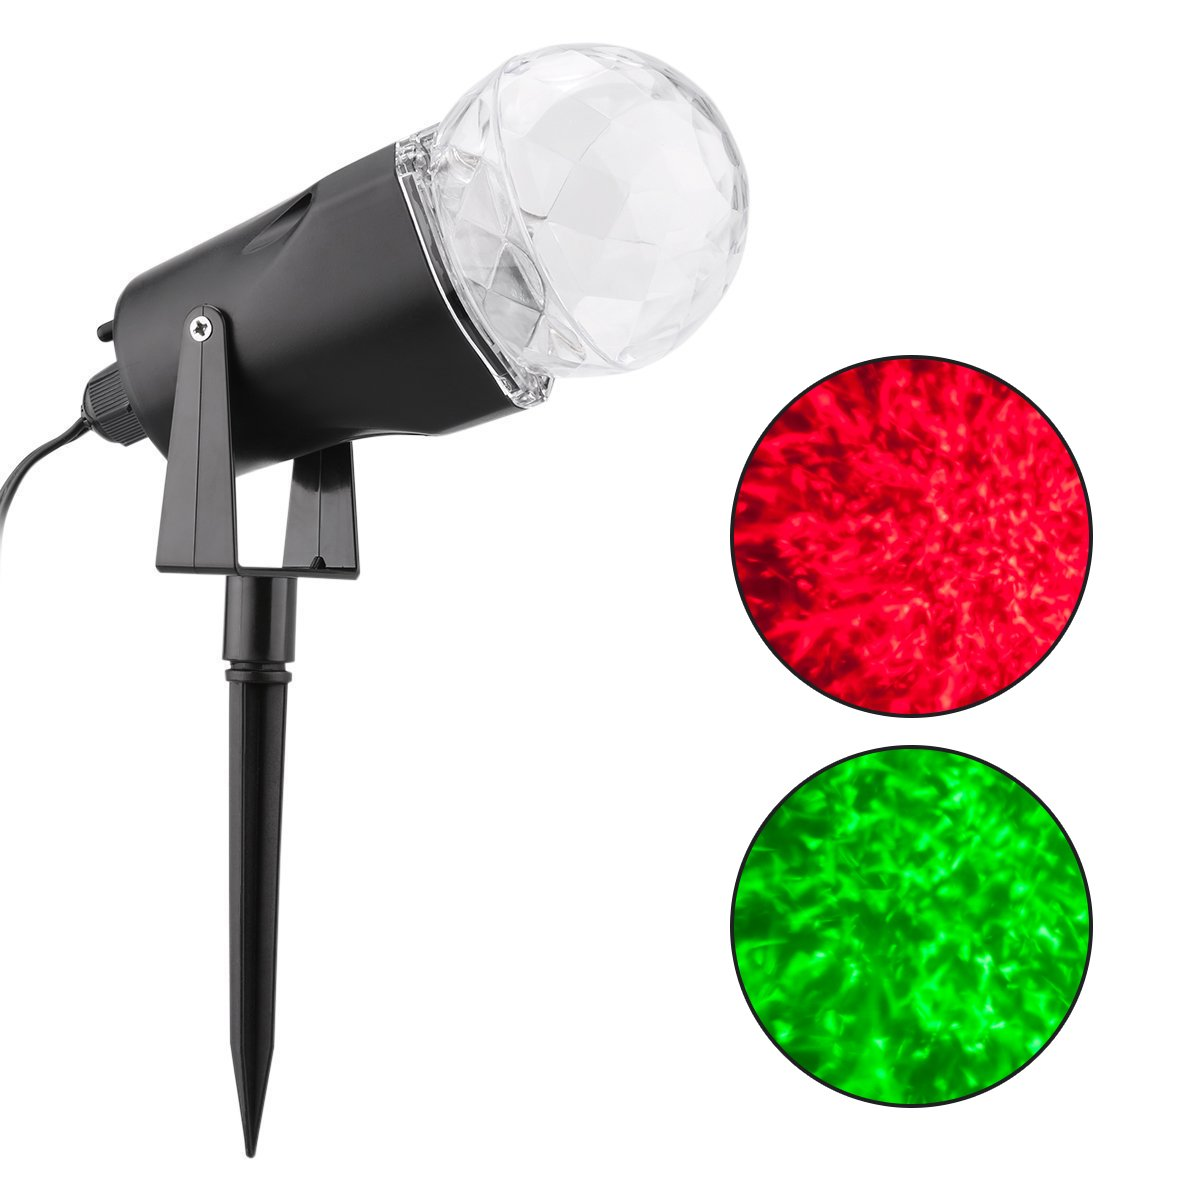 WED Waterproof Spotlight Rotating Led Projector Light with Flame Lightings for Indoor Outdoor Christmas Festival Decorations for Home, Garden, Landscape (Red & Green)